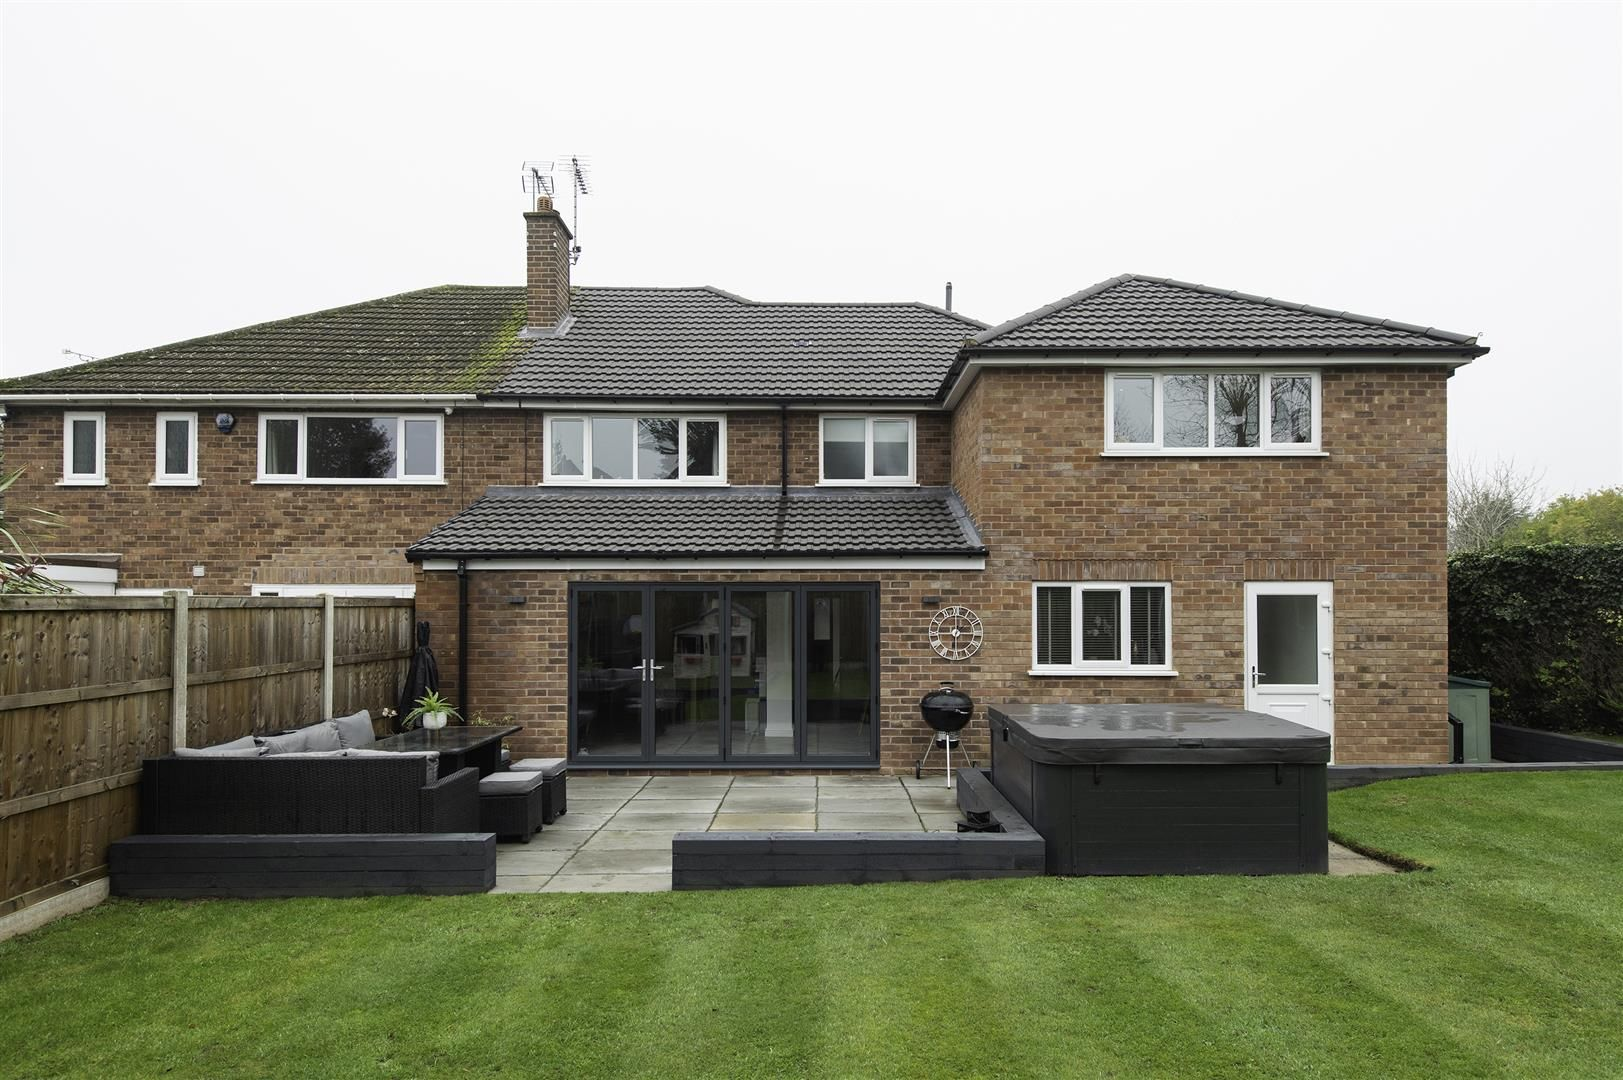 4 bed semi-detached for sale  - Property Image 41